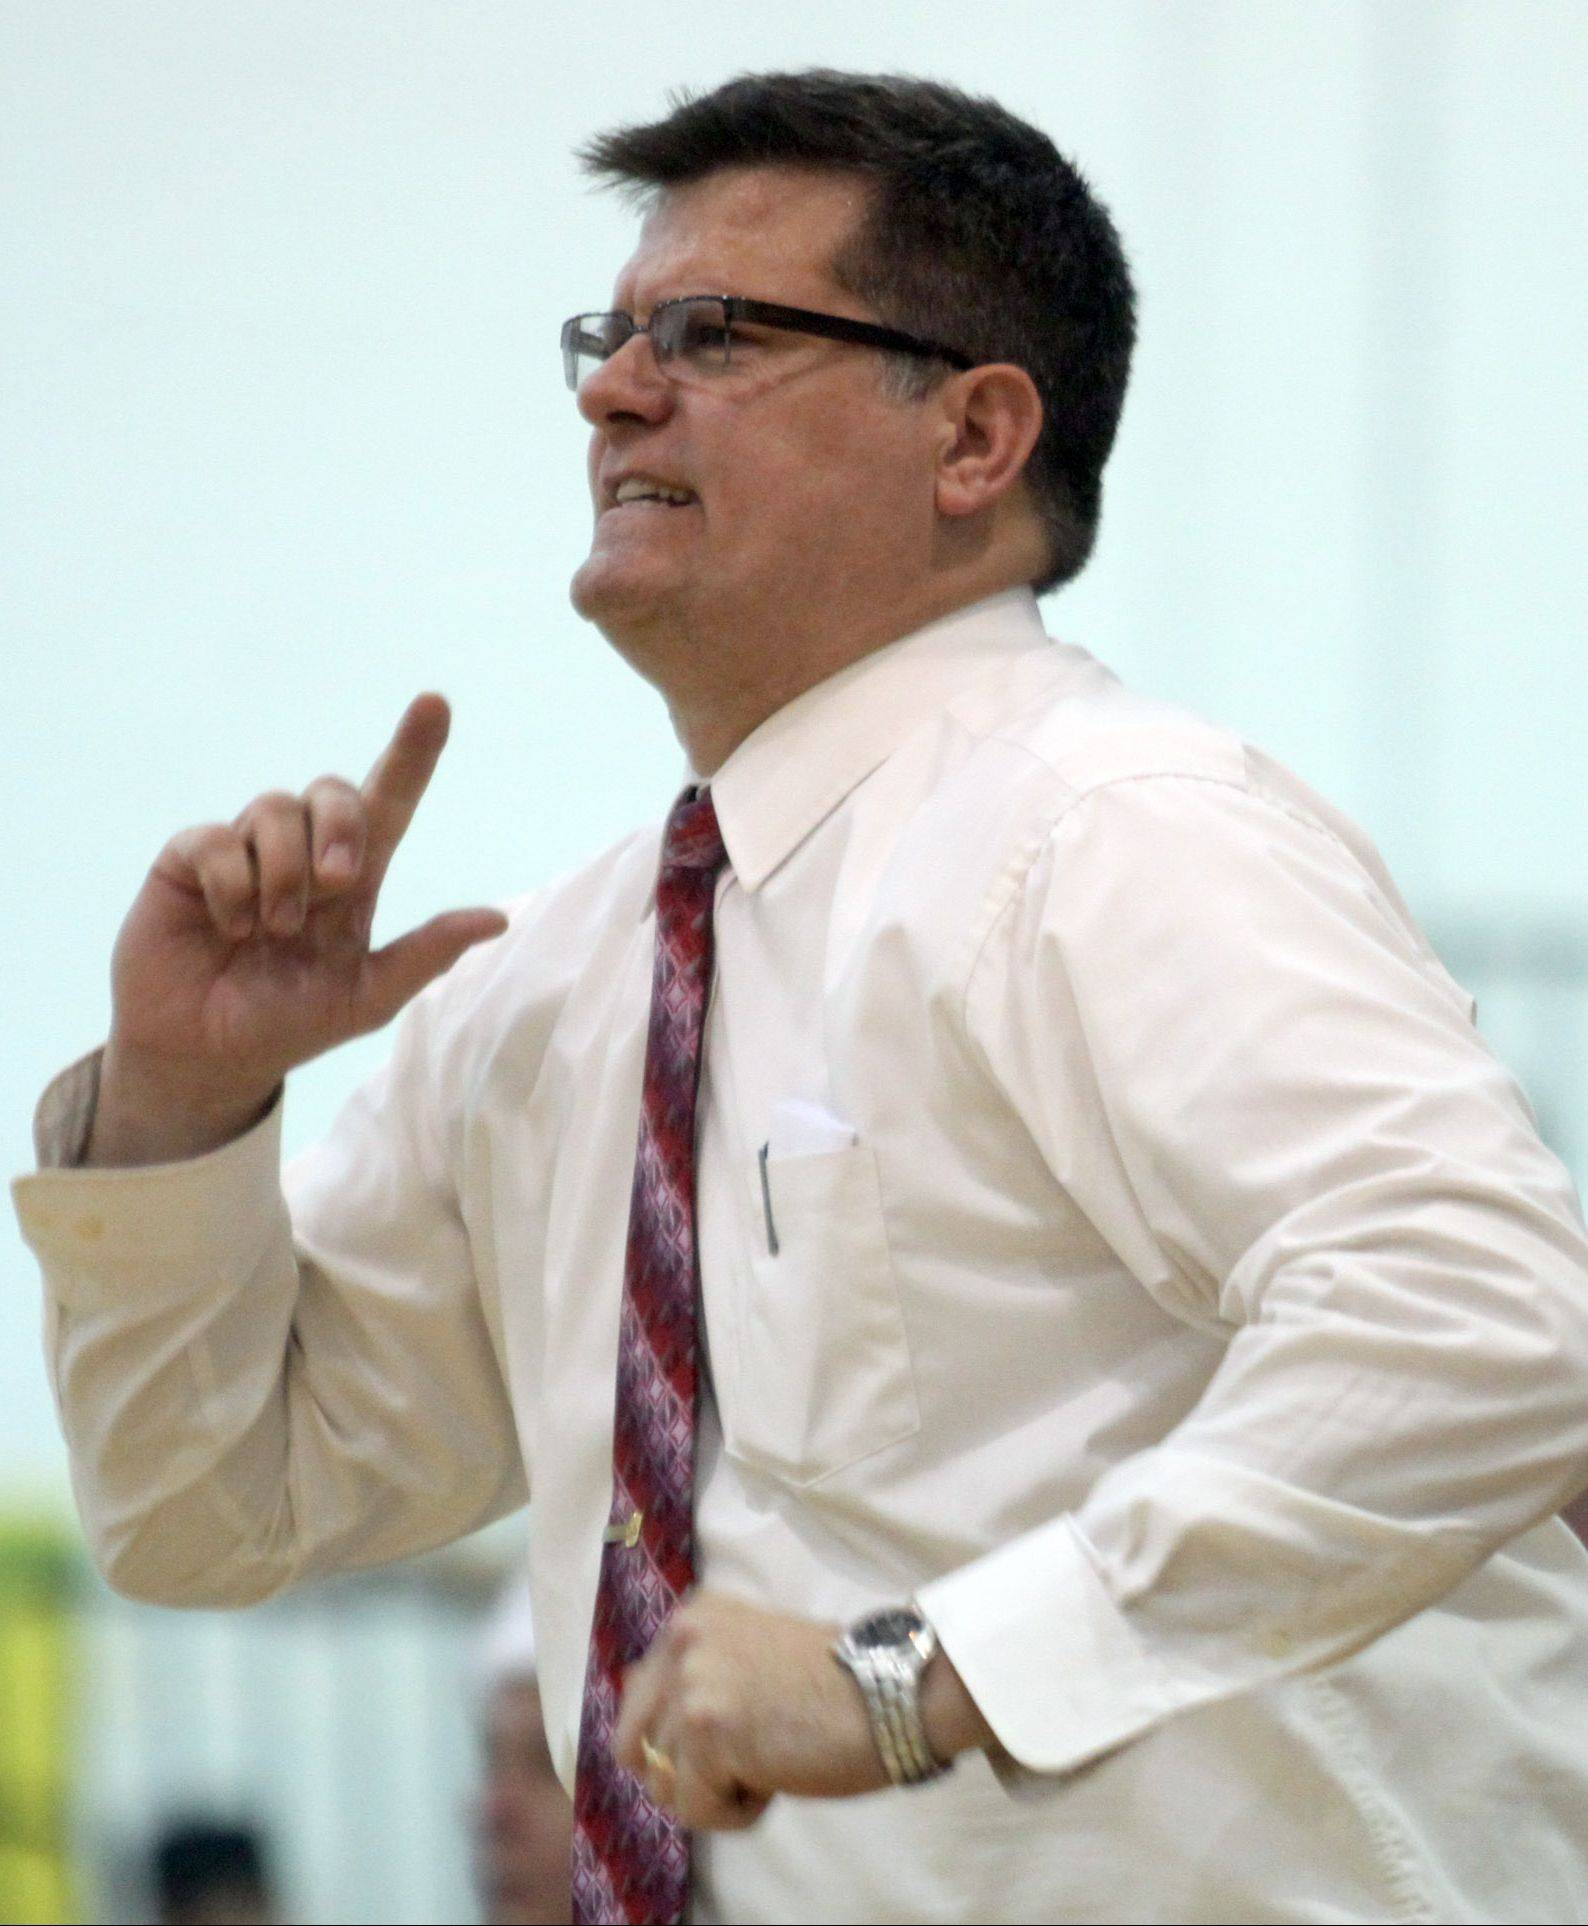 Recently retired Mundelein boys basketball coach Dick Knar is leaving the school to become the athletic director at Grant.